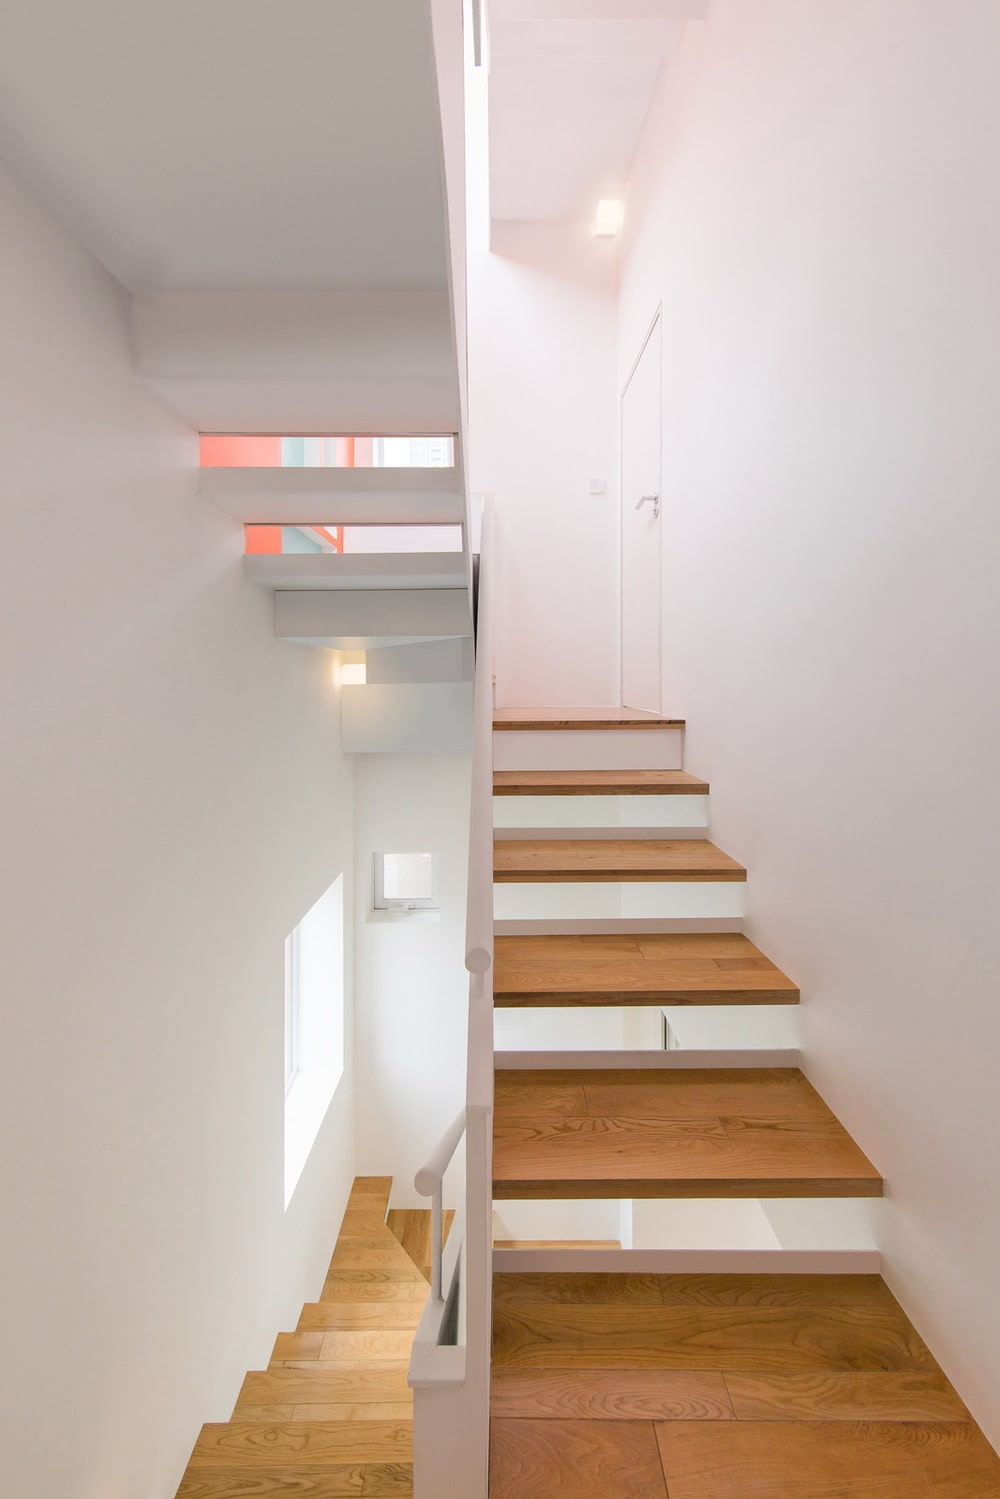 This is another look at the staircase that has bright white elements complemented by the wooden steps.